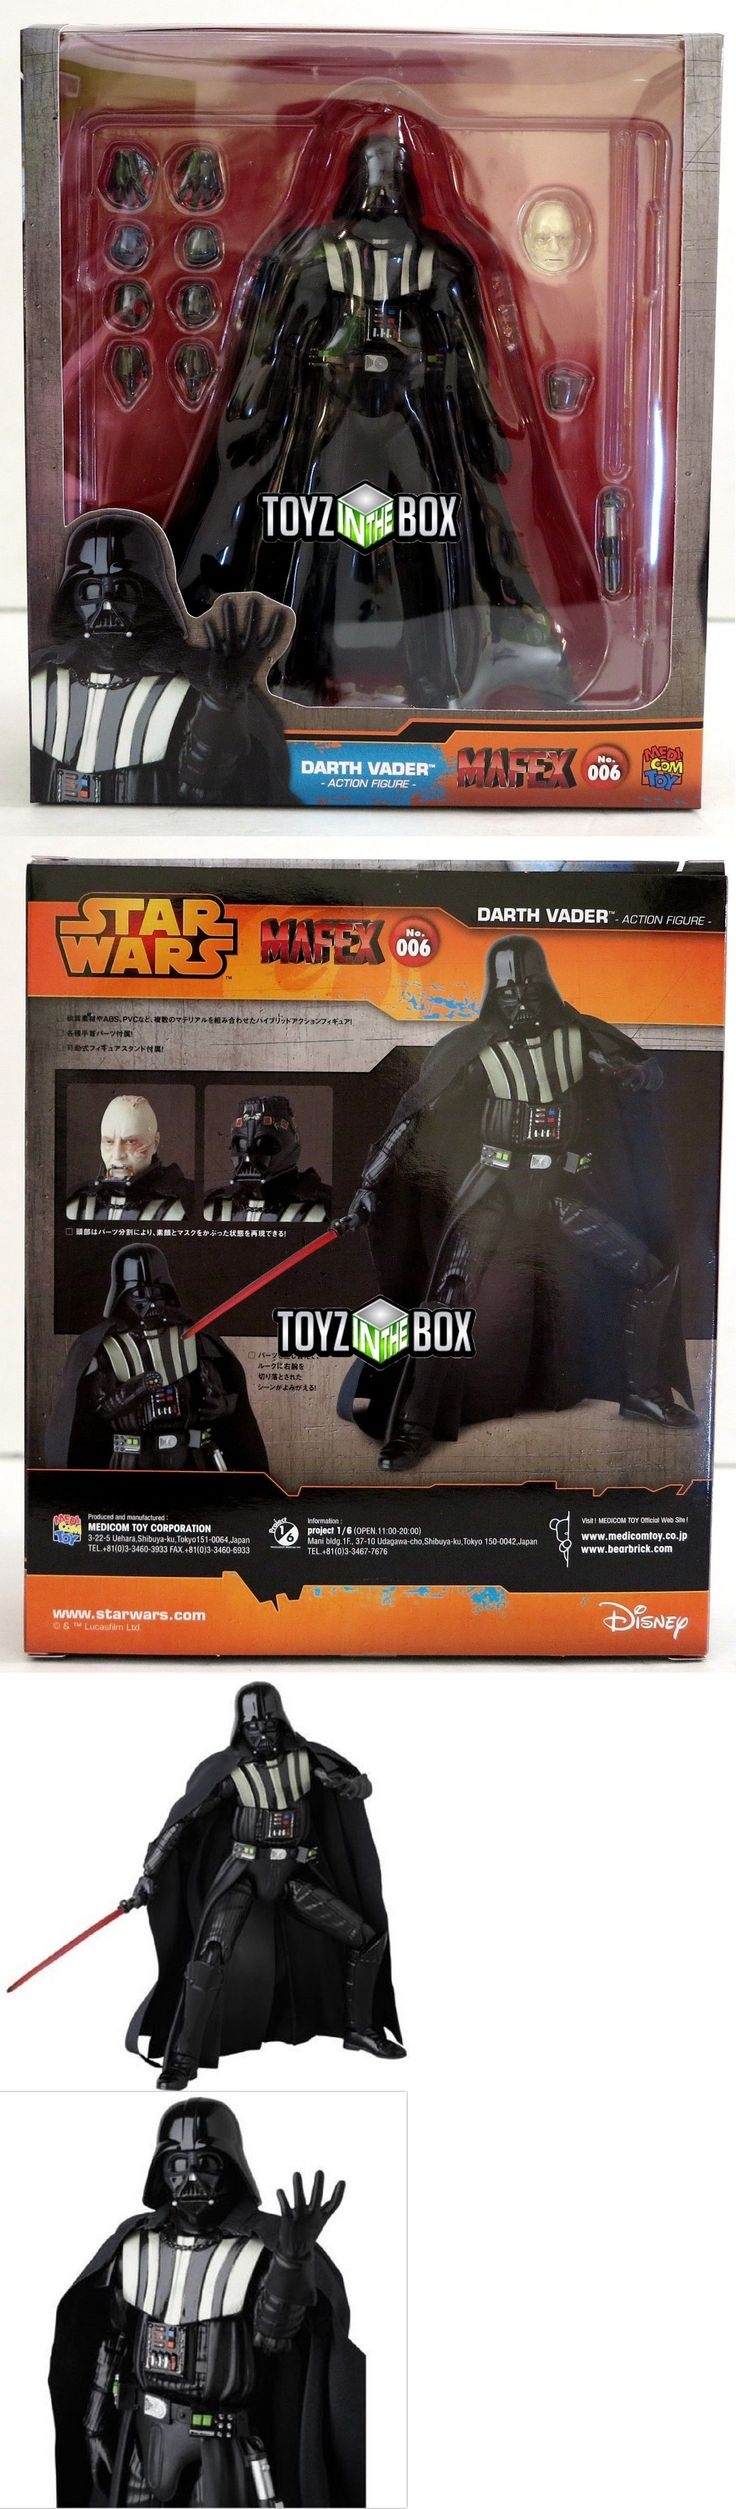 Toys And Games: In Stock Medicom Toy Star Wars Darth Vader 006 Mafex Action Figure -> BUY IT NOW ONLY: $52.99 on eBay!